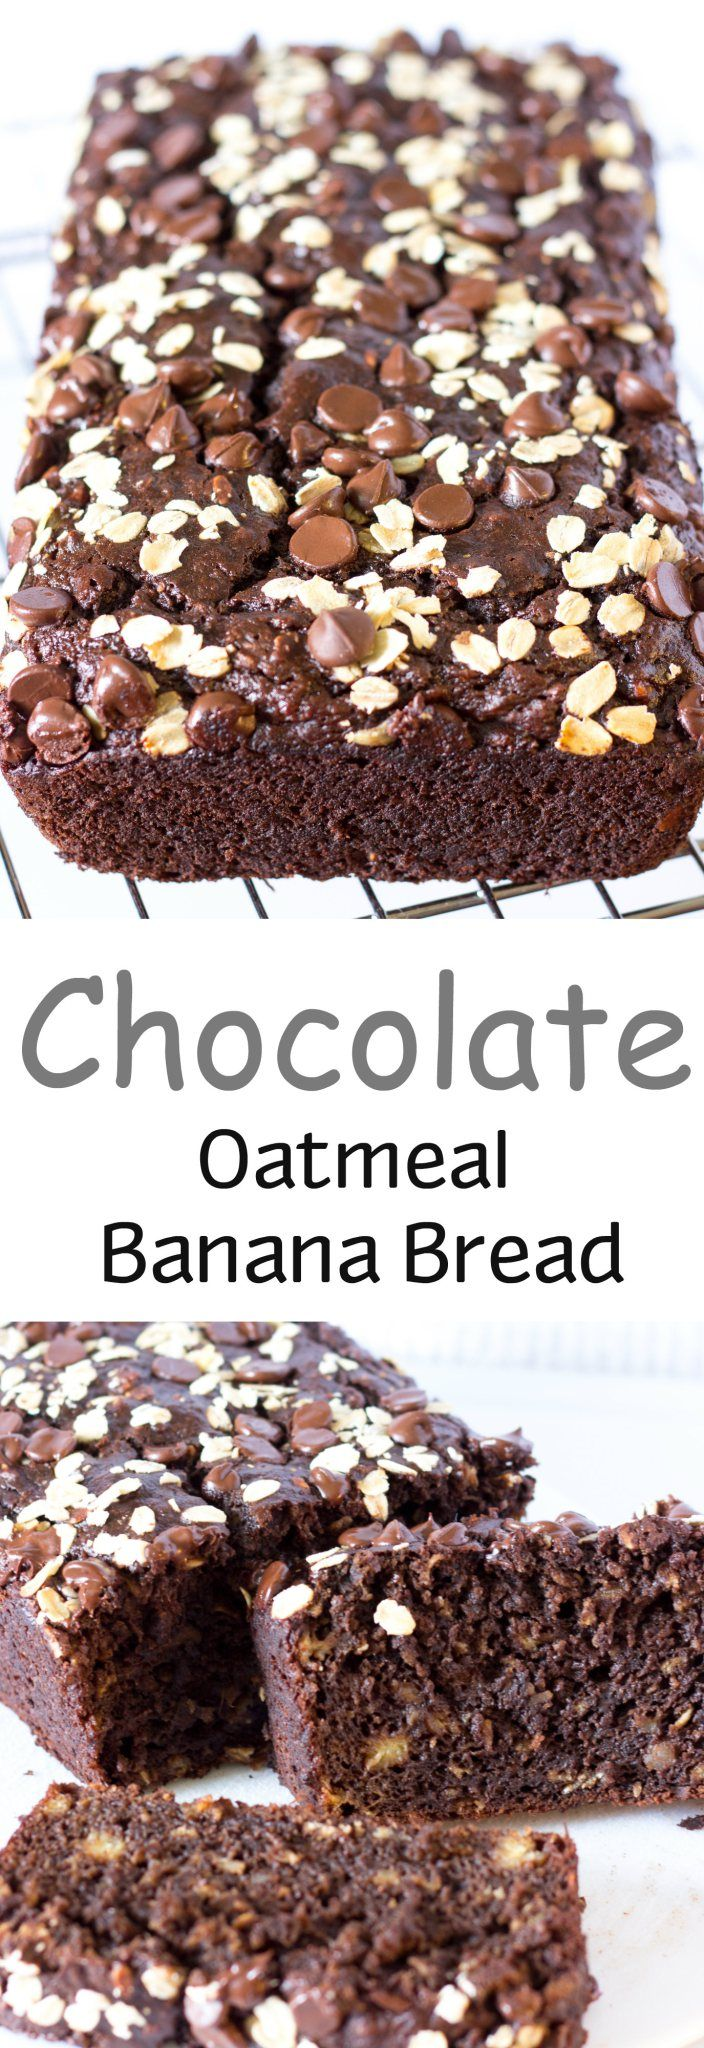 Chocolate Oatmeal Banana Bread - #oats #healthy #breakfast #snack